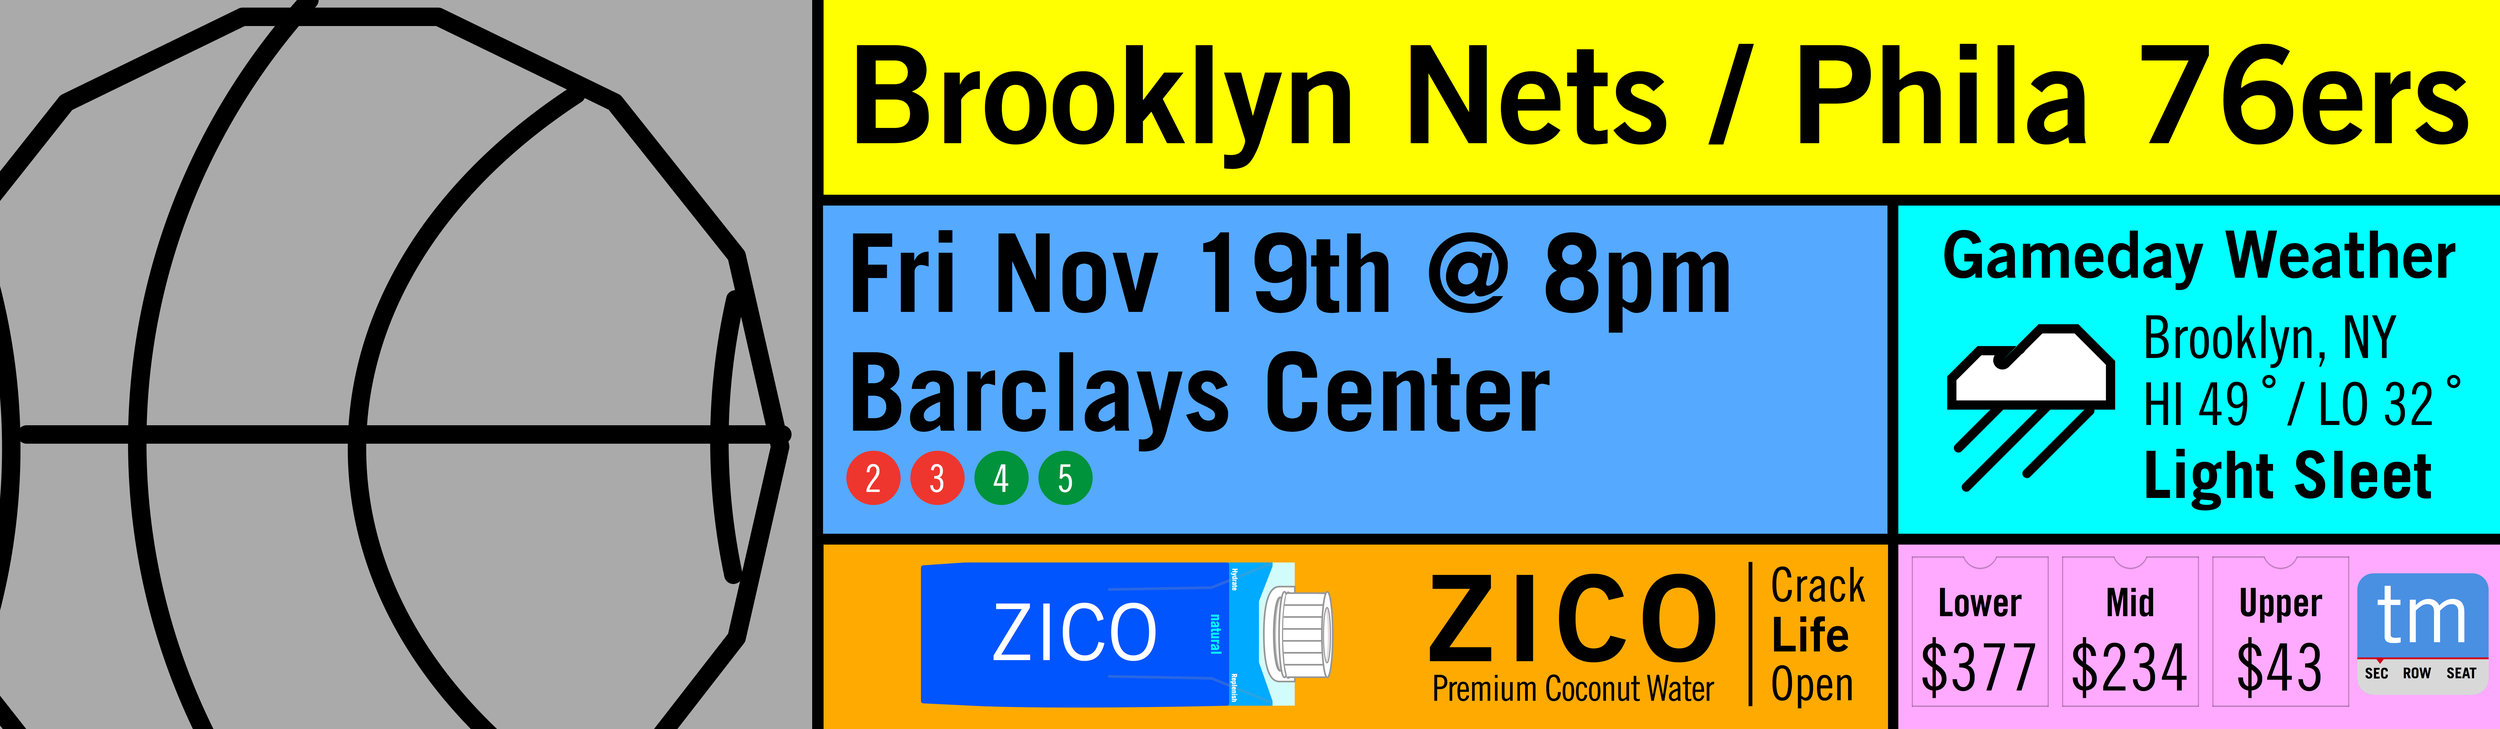 Brooklyn Version, Select image to view larger